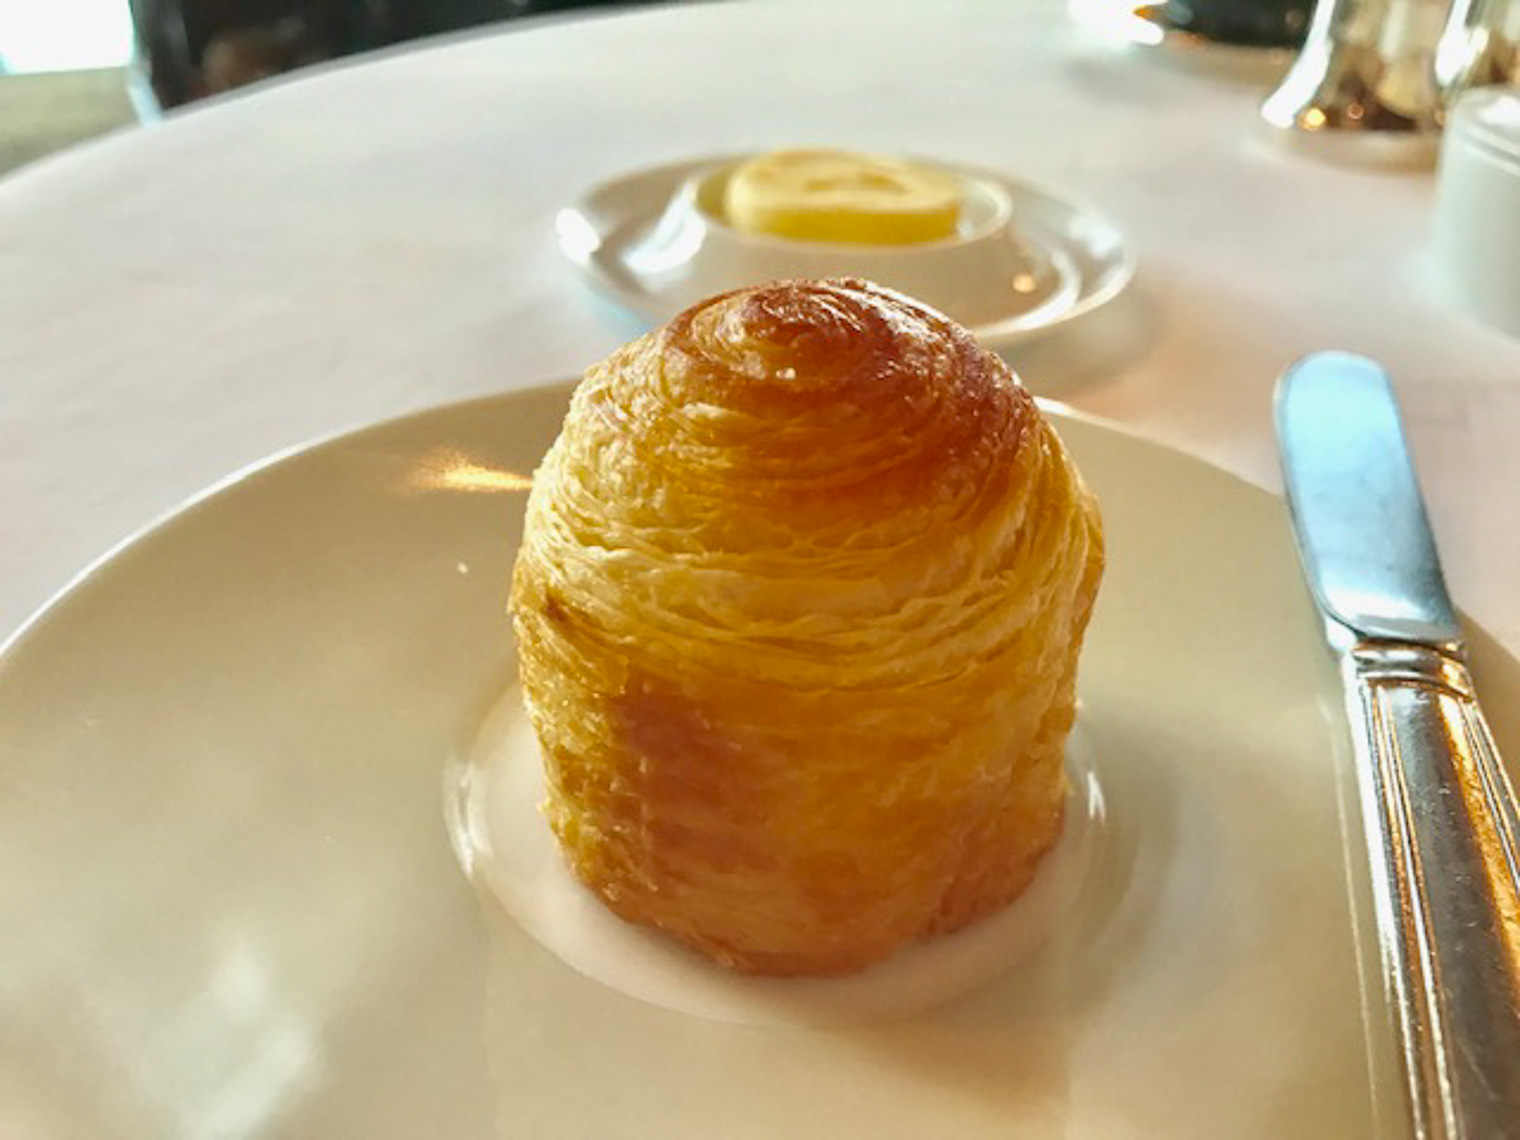 Review of the French restaurant Les Amis